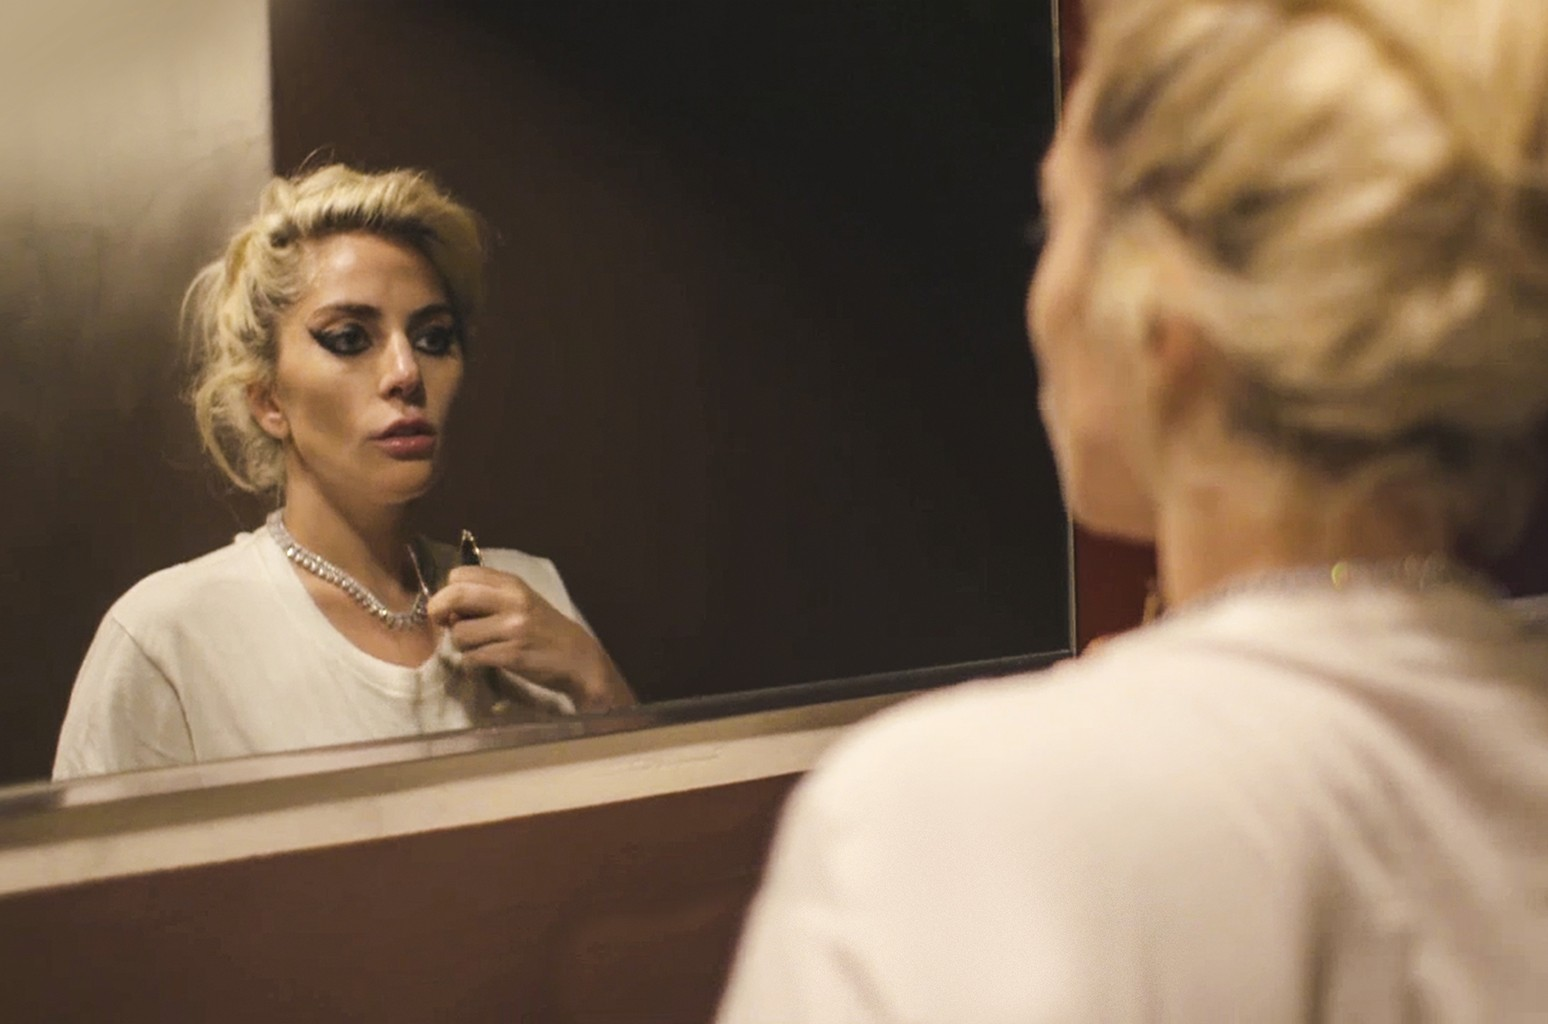 Lady Gaga in the Netflix original documentary Gaga: Five Foot Two.